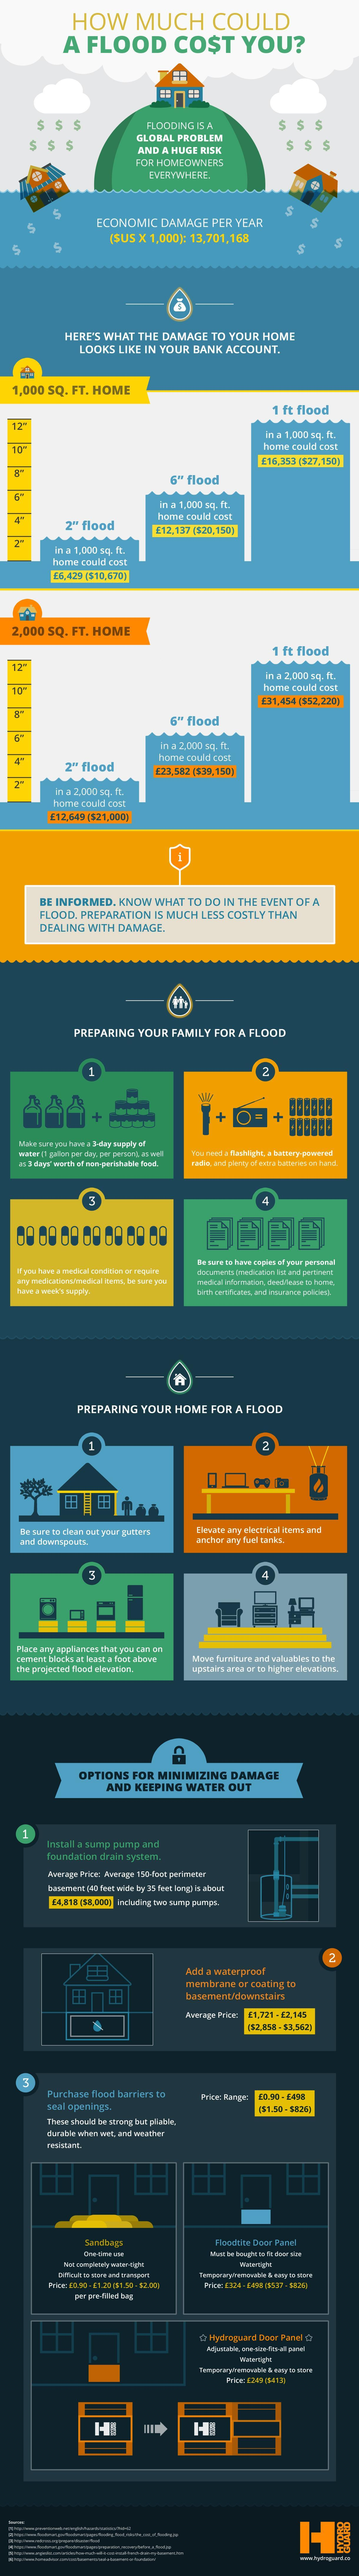 How Much Could A Flood Cost You